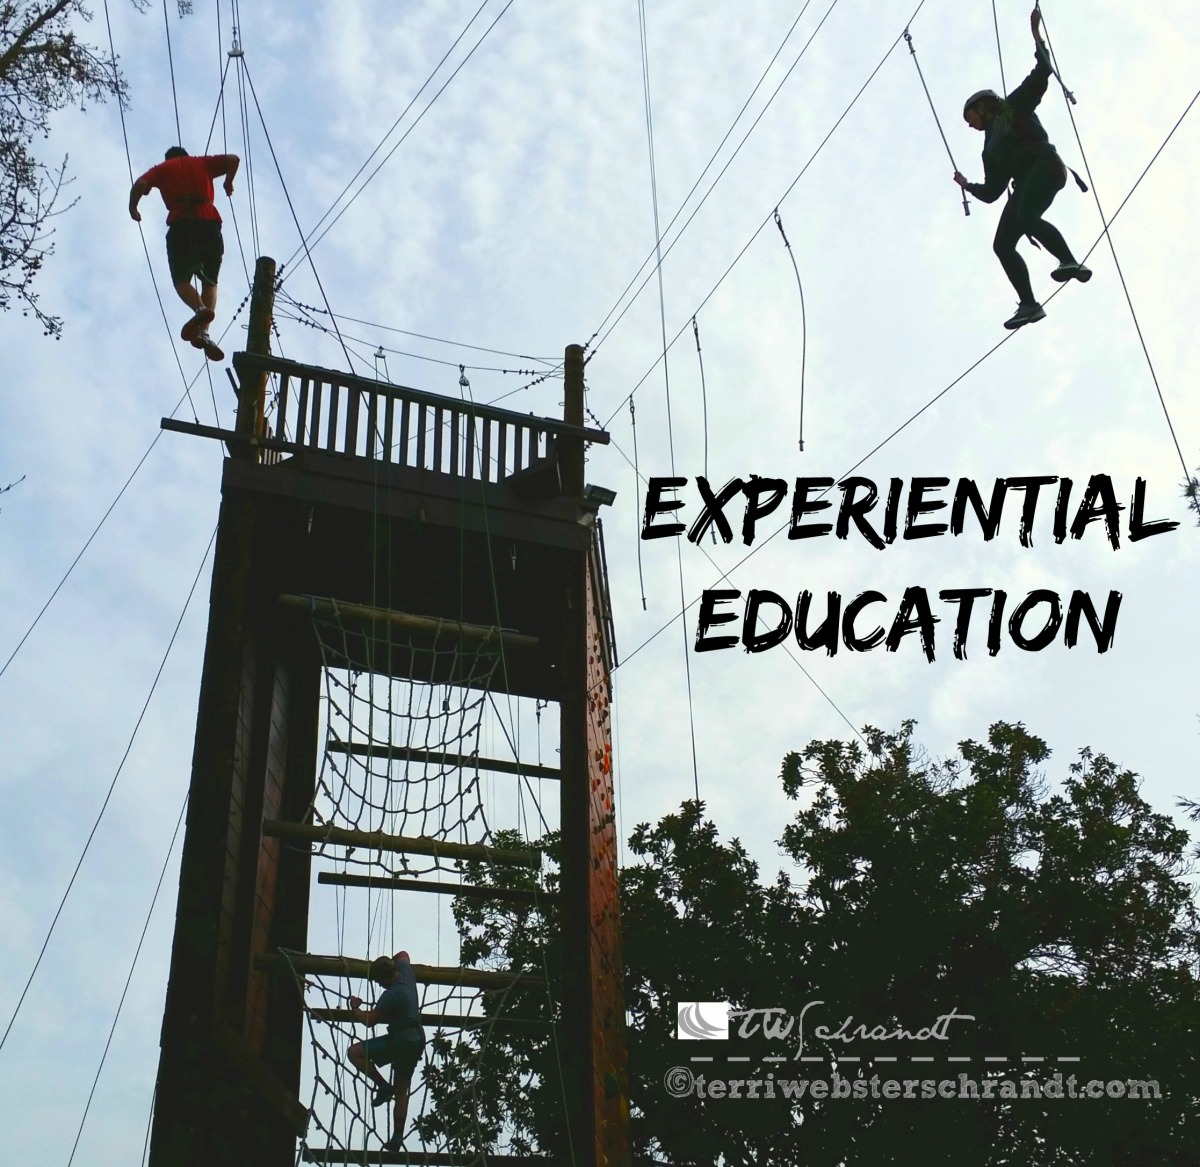 Experiential Education allows students to attempt challenges and face their fears.